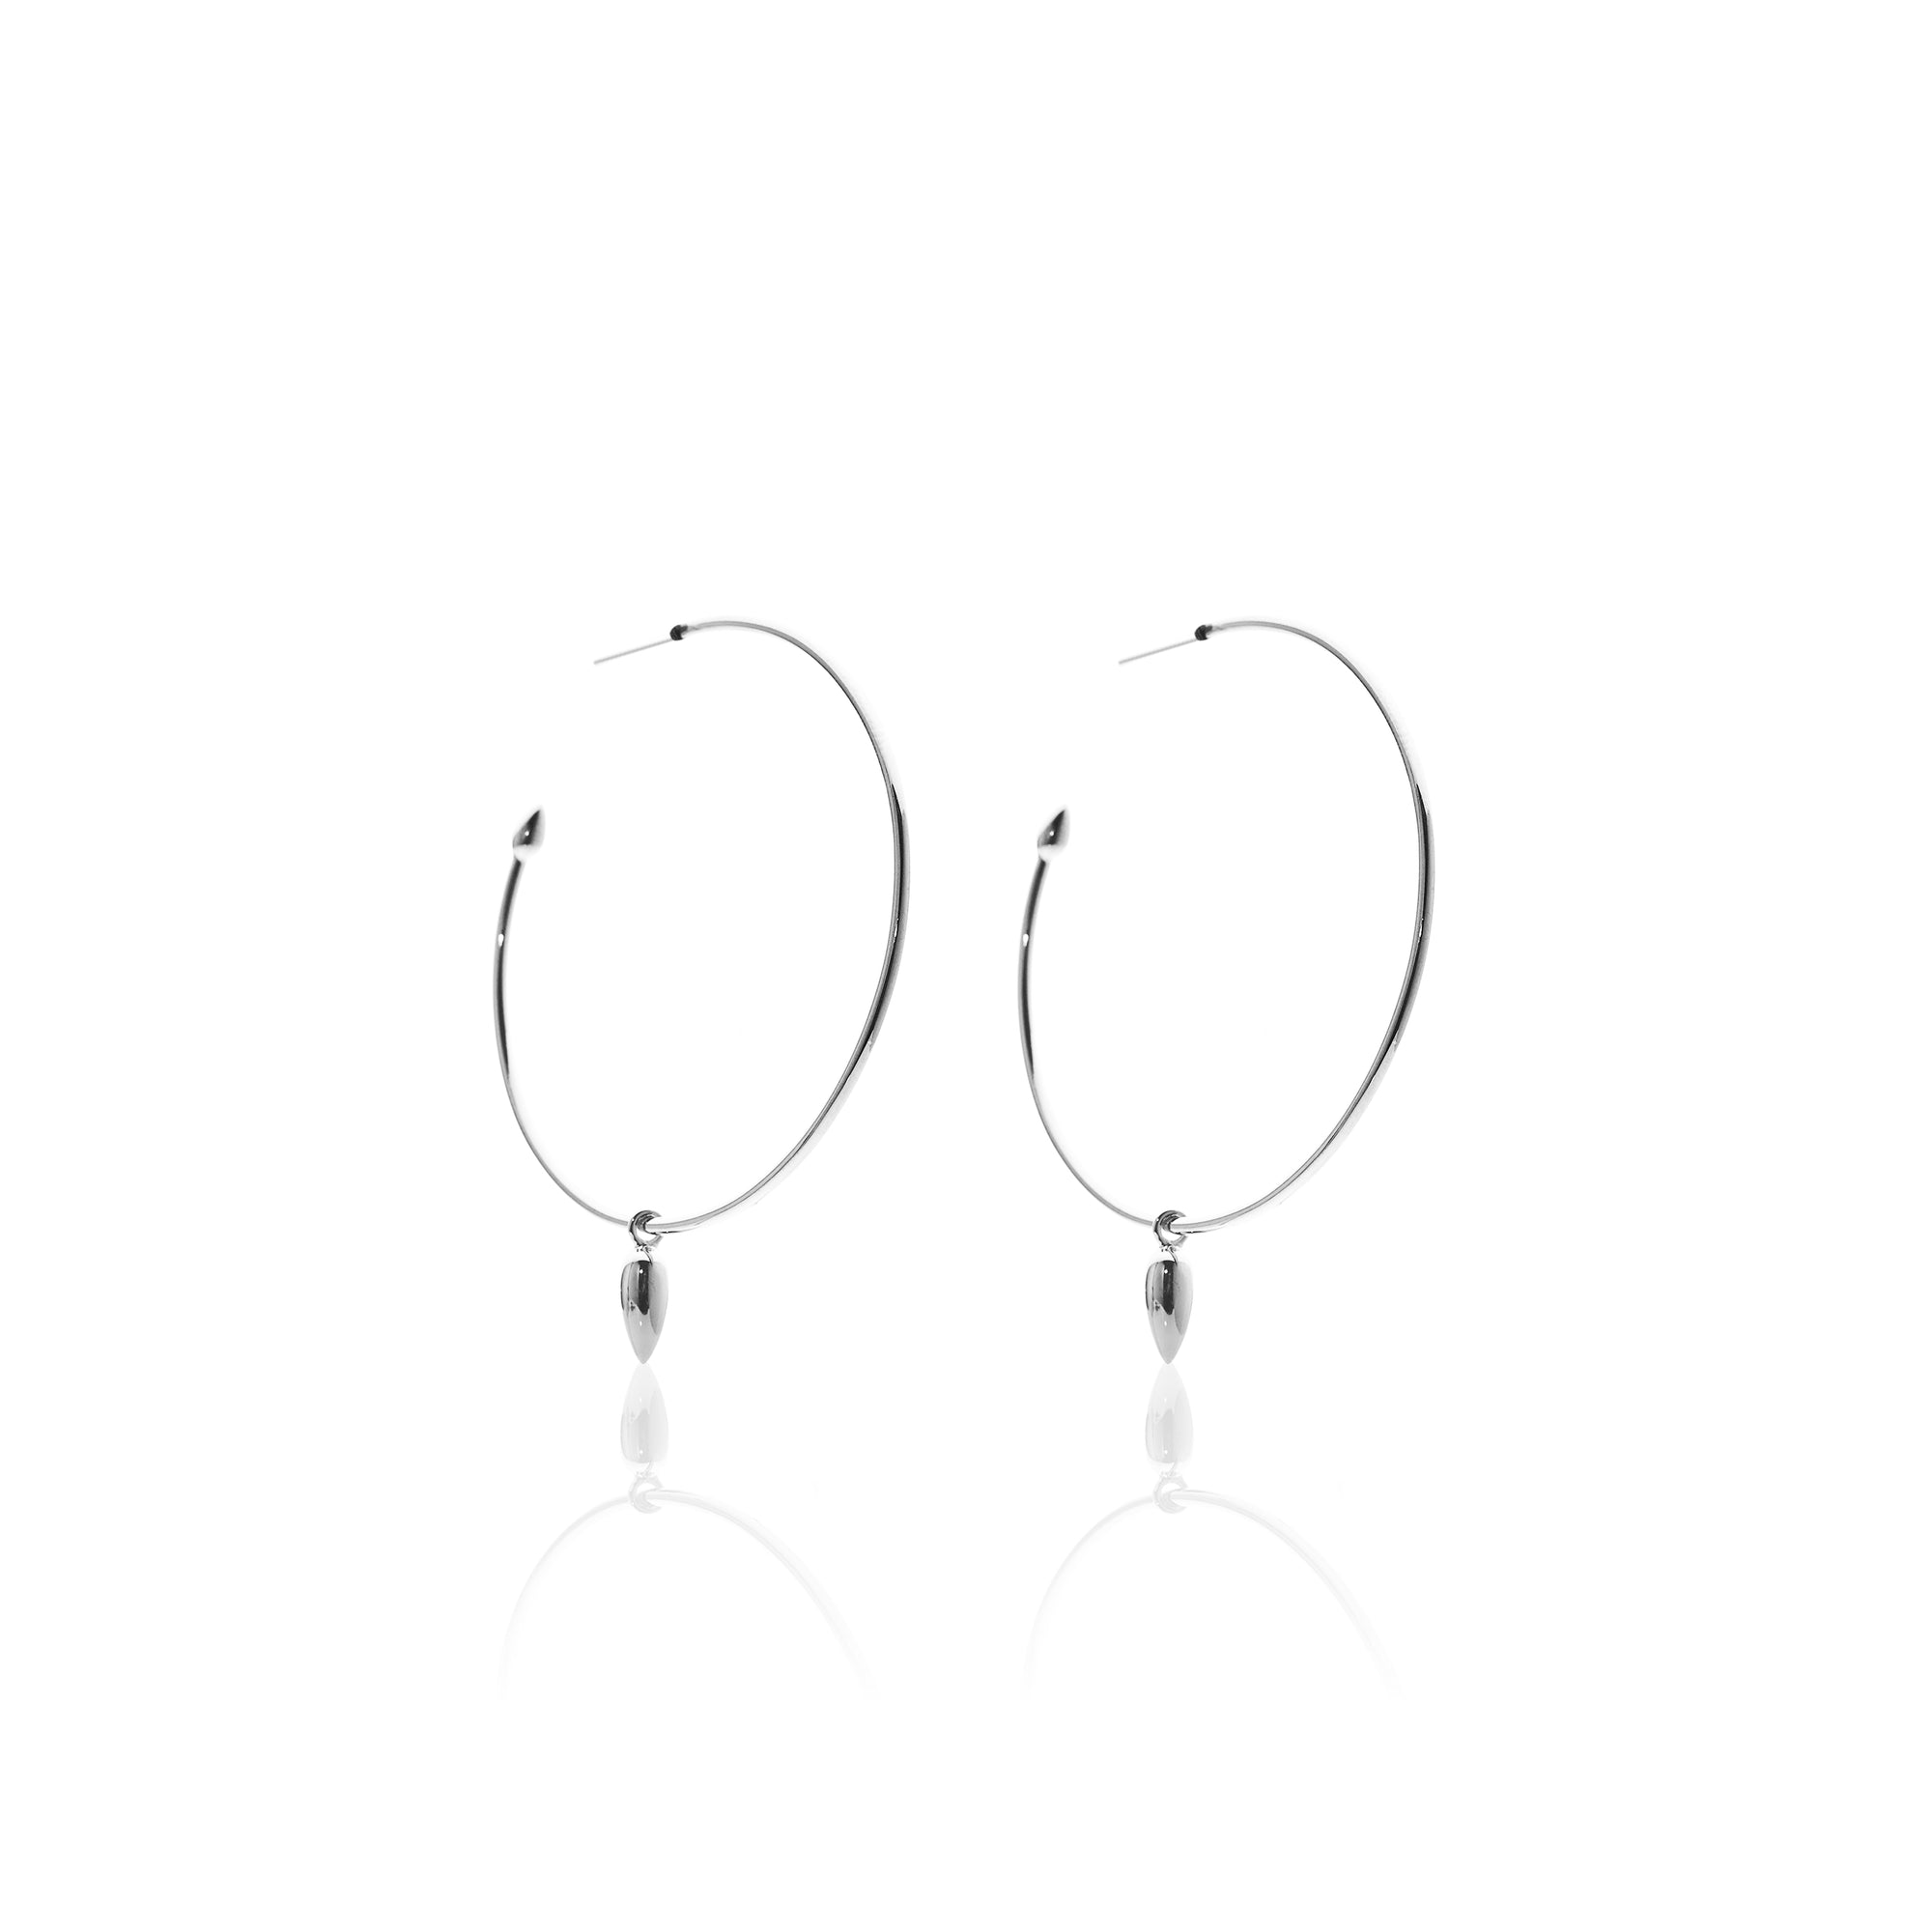 Silk&Steel Jewellery Solo Hoop Earrings Silver From Aria Collection